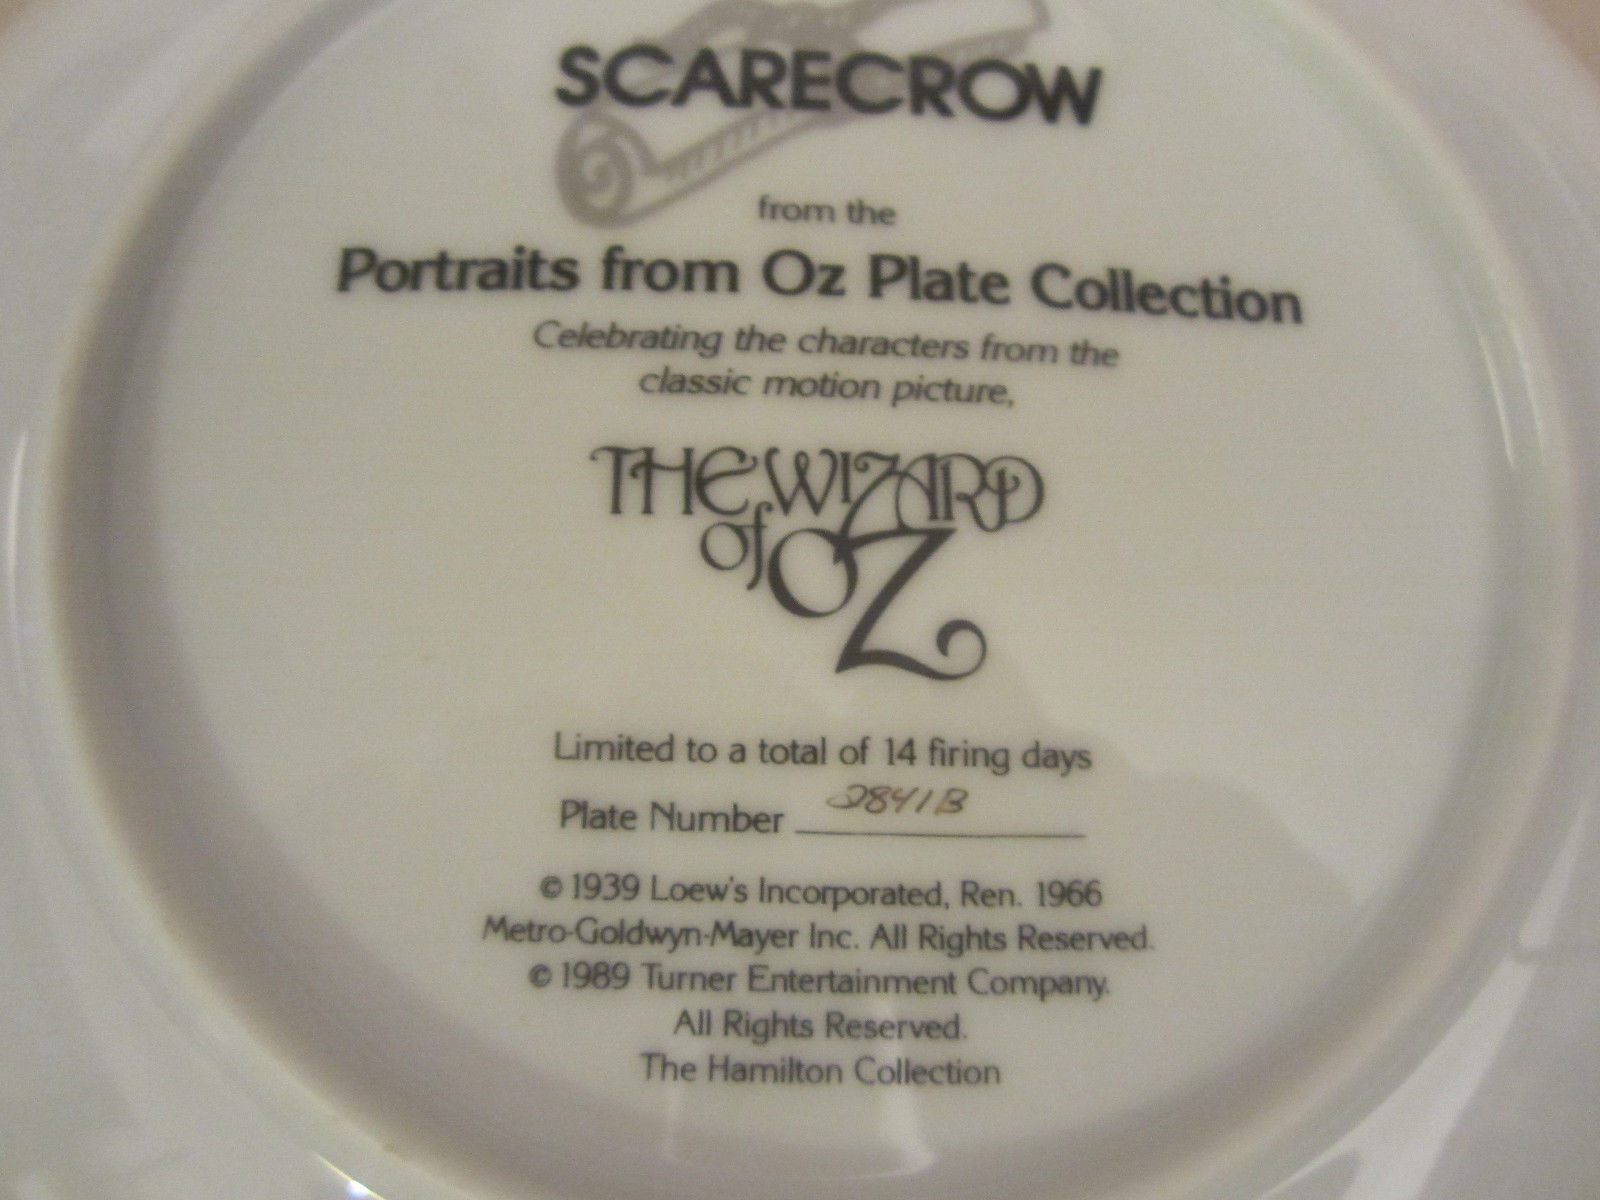 SCARECROW collector plate WIZARD OF OZ PORTRAITS Thomas Blackshear